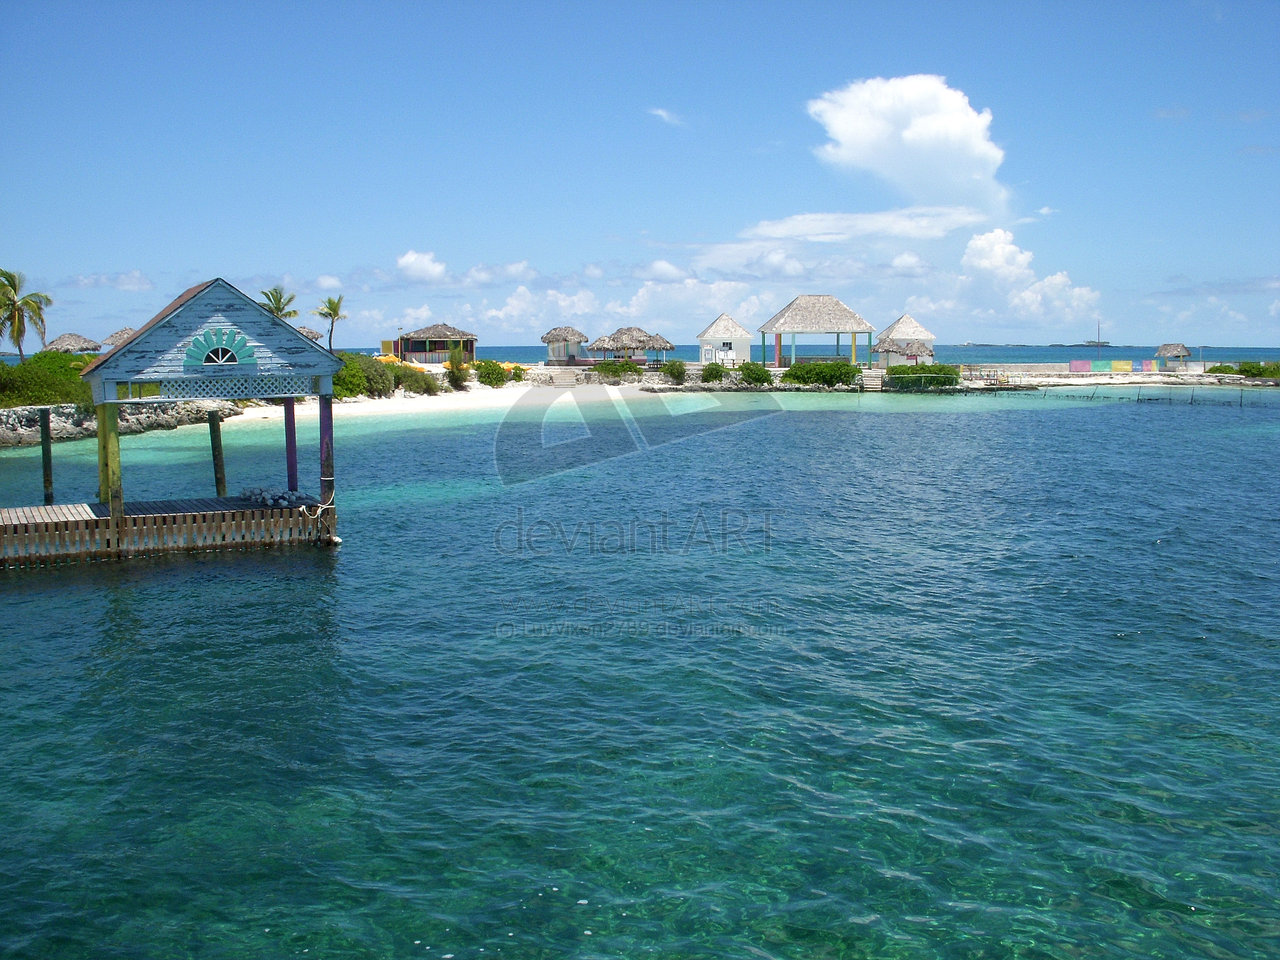 Find Places to Stay in Nassau on Airbnb